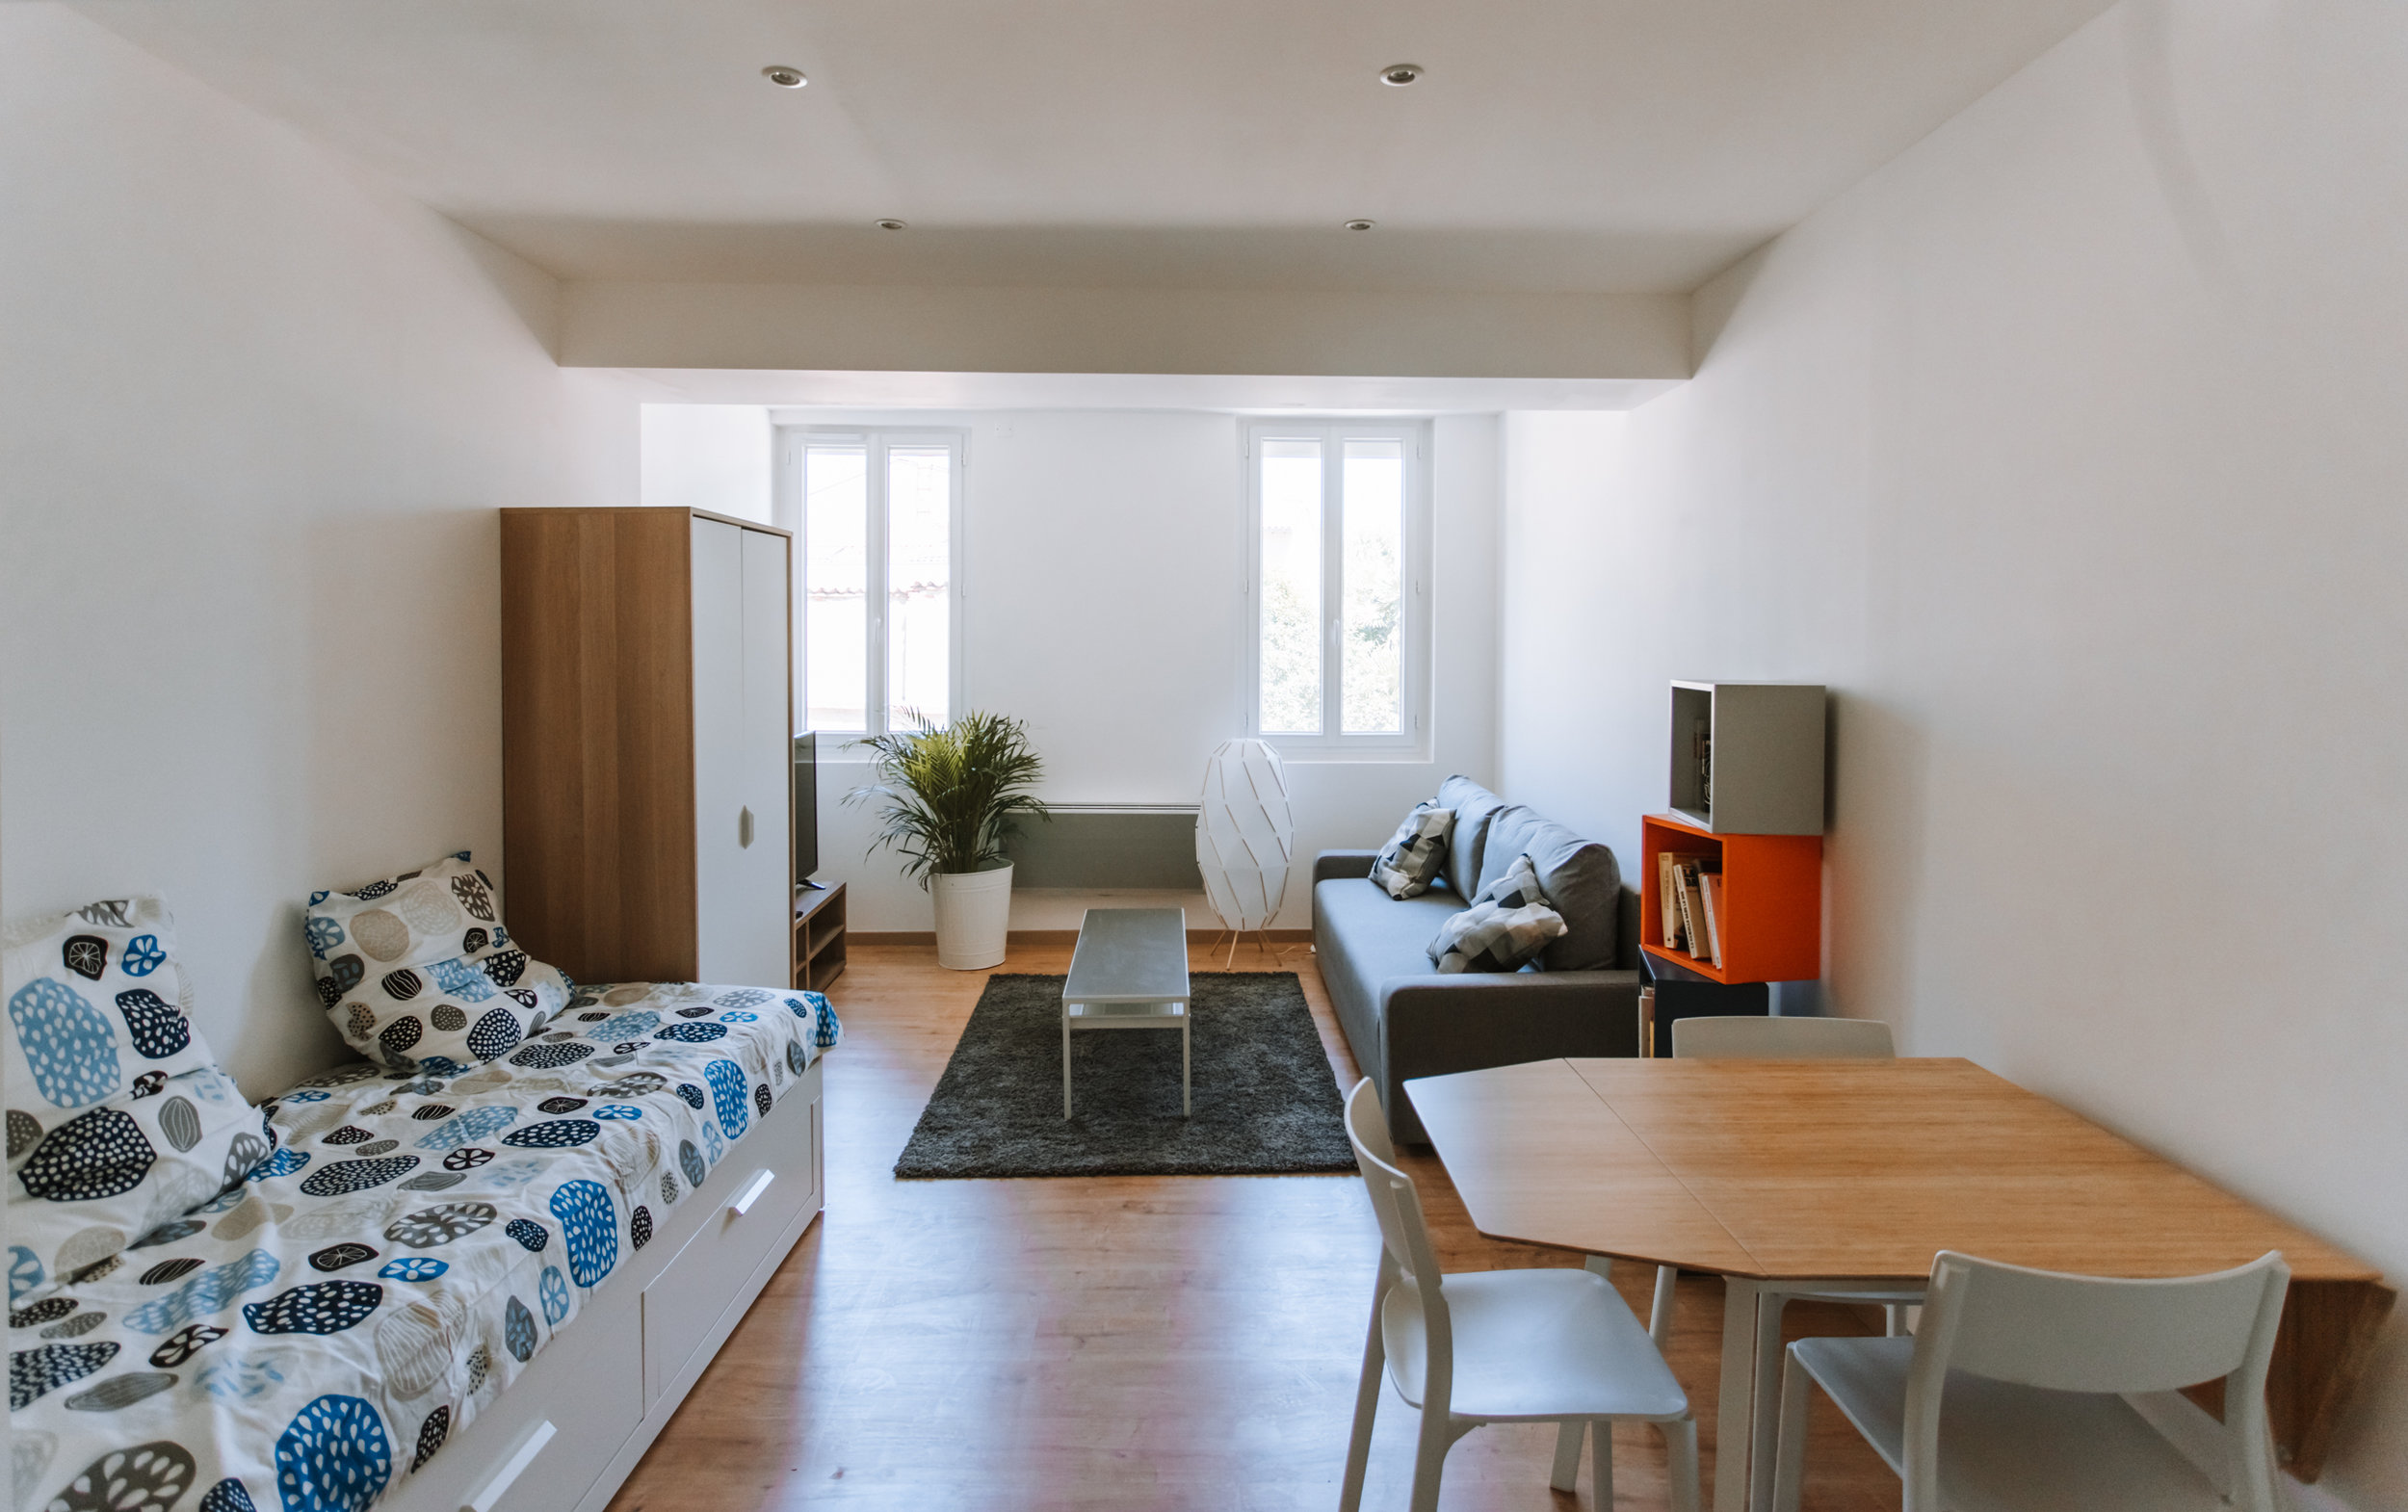 Geoffrey-Lucas-comissions-rent-home-toulouse-3.jpg